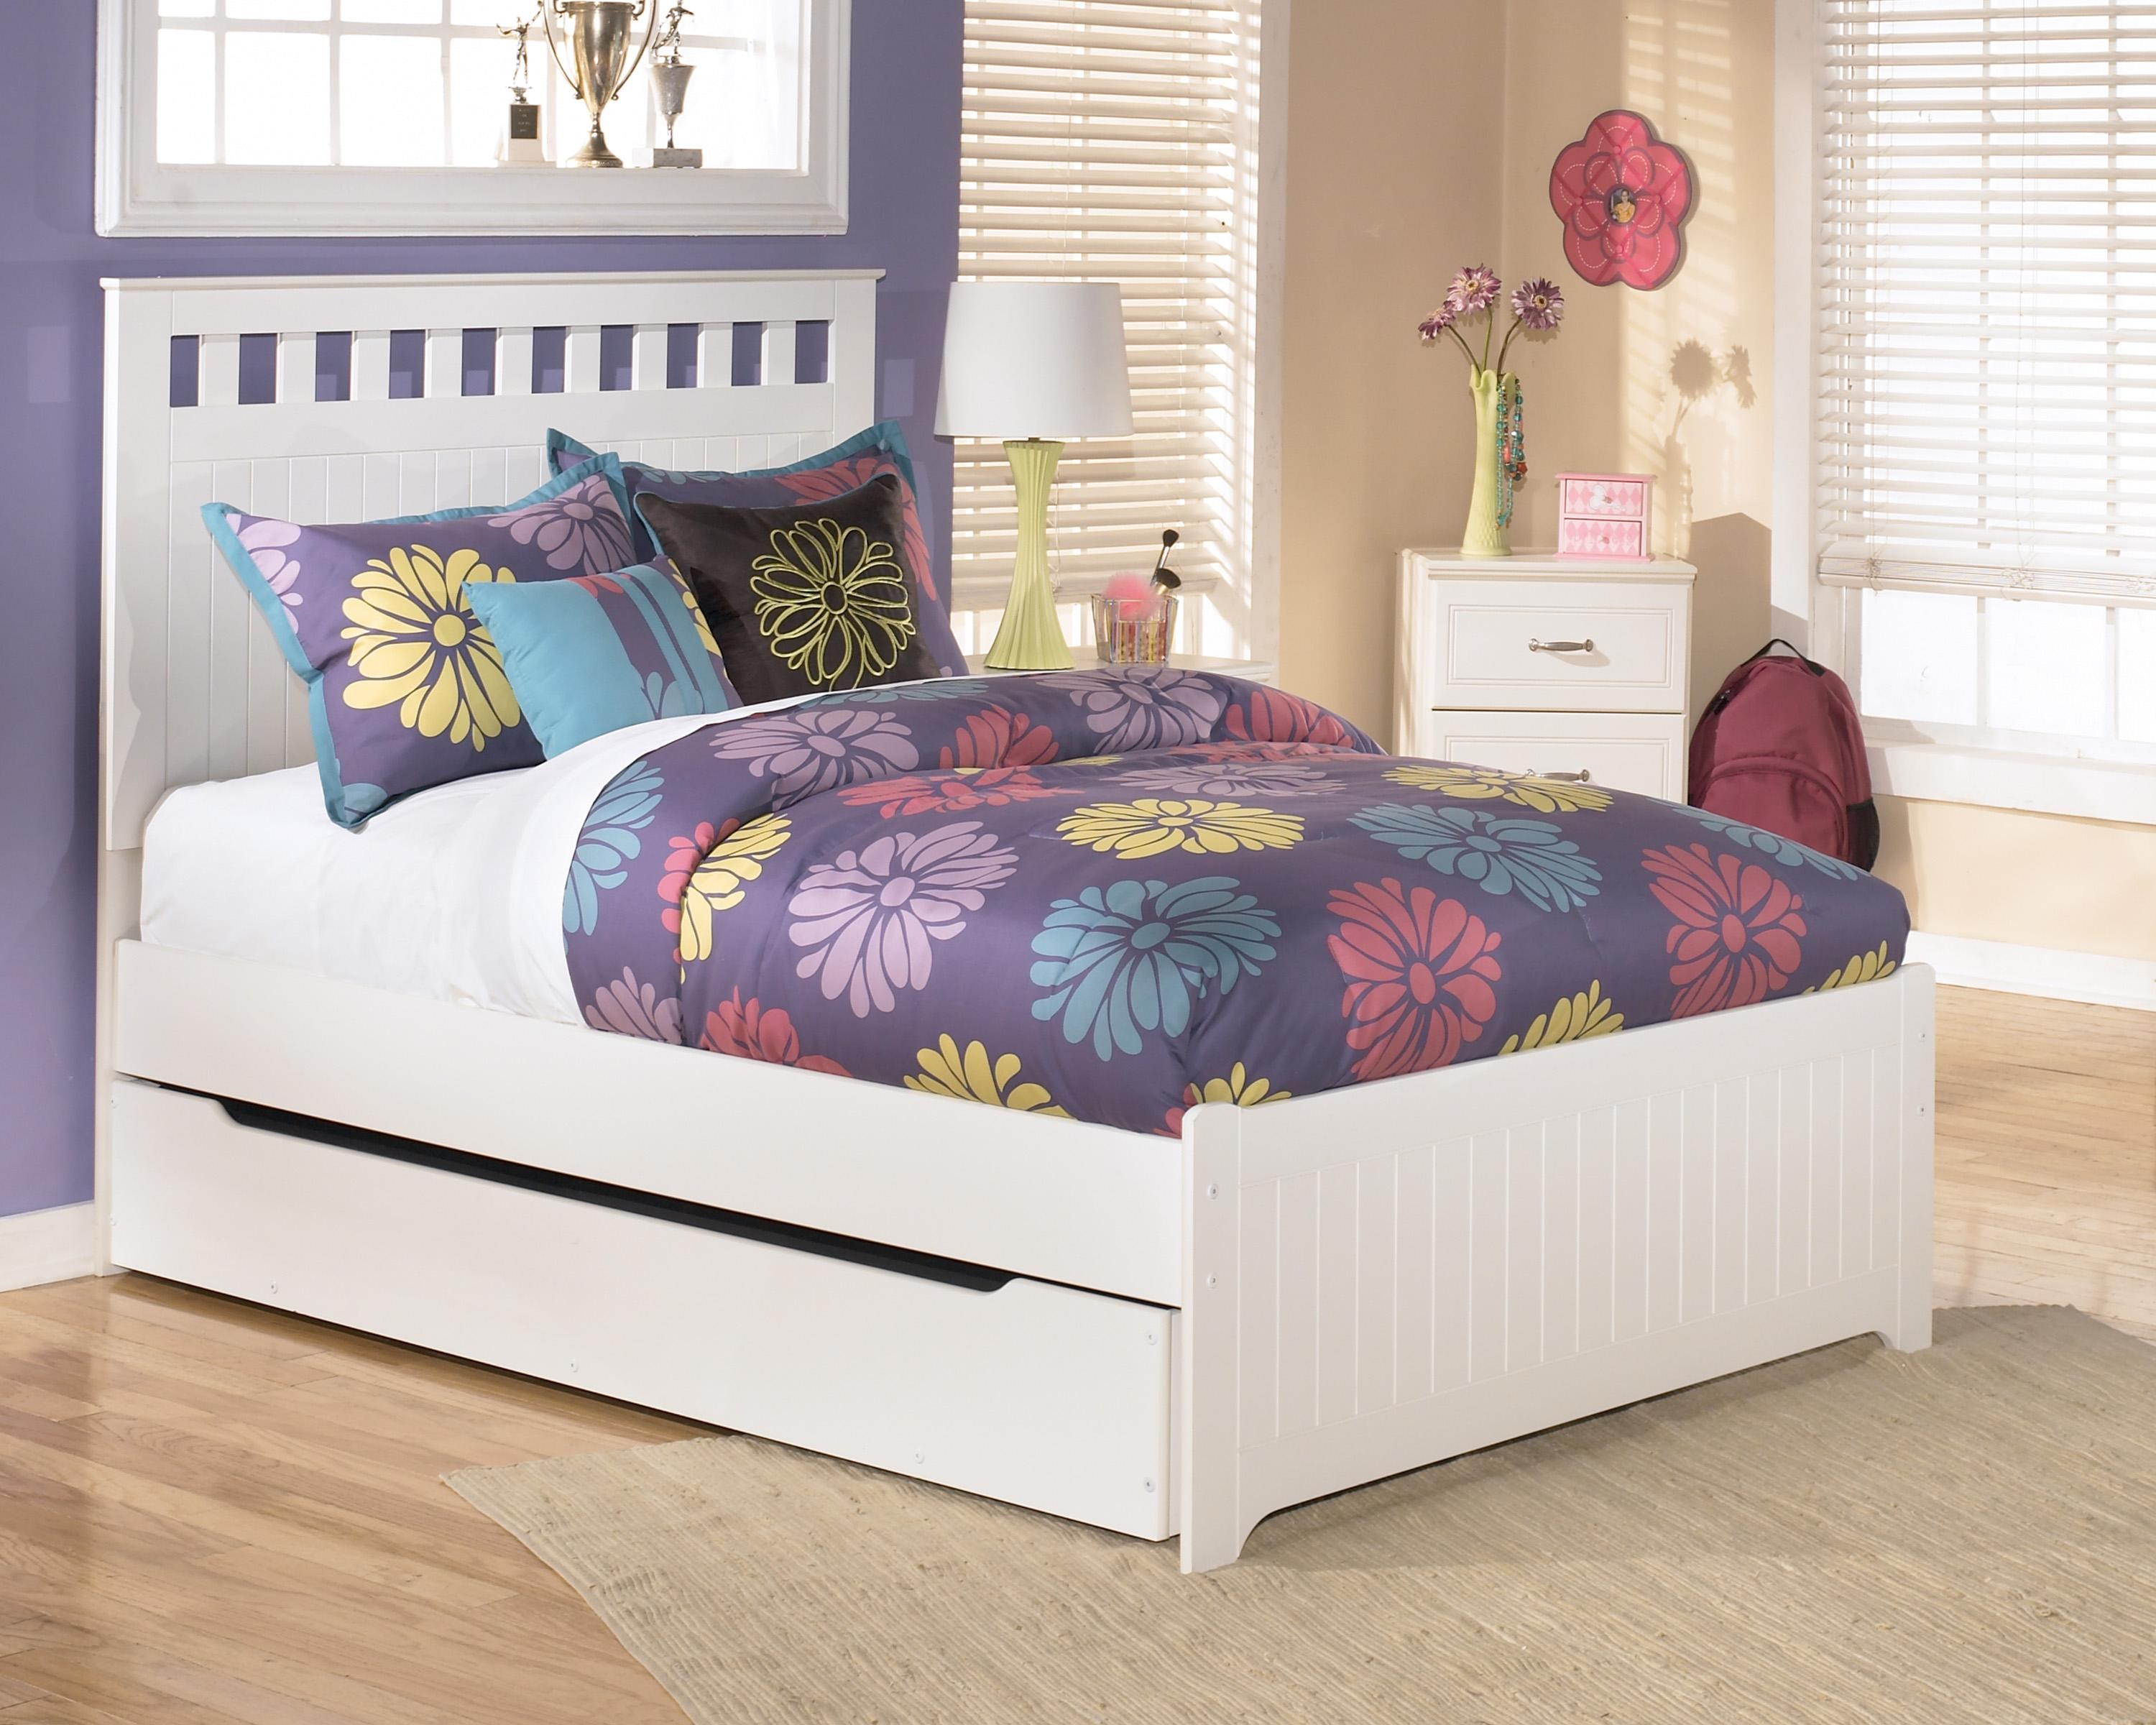 Signature Design by Ashley Lulu Full Bed with Storage